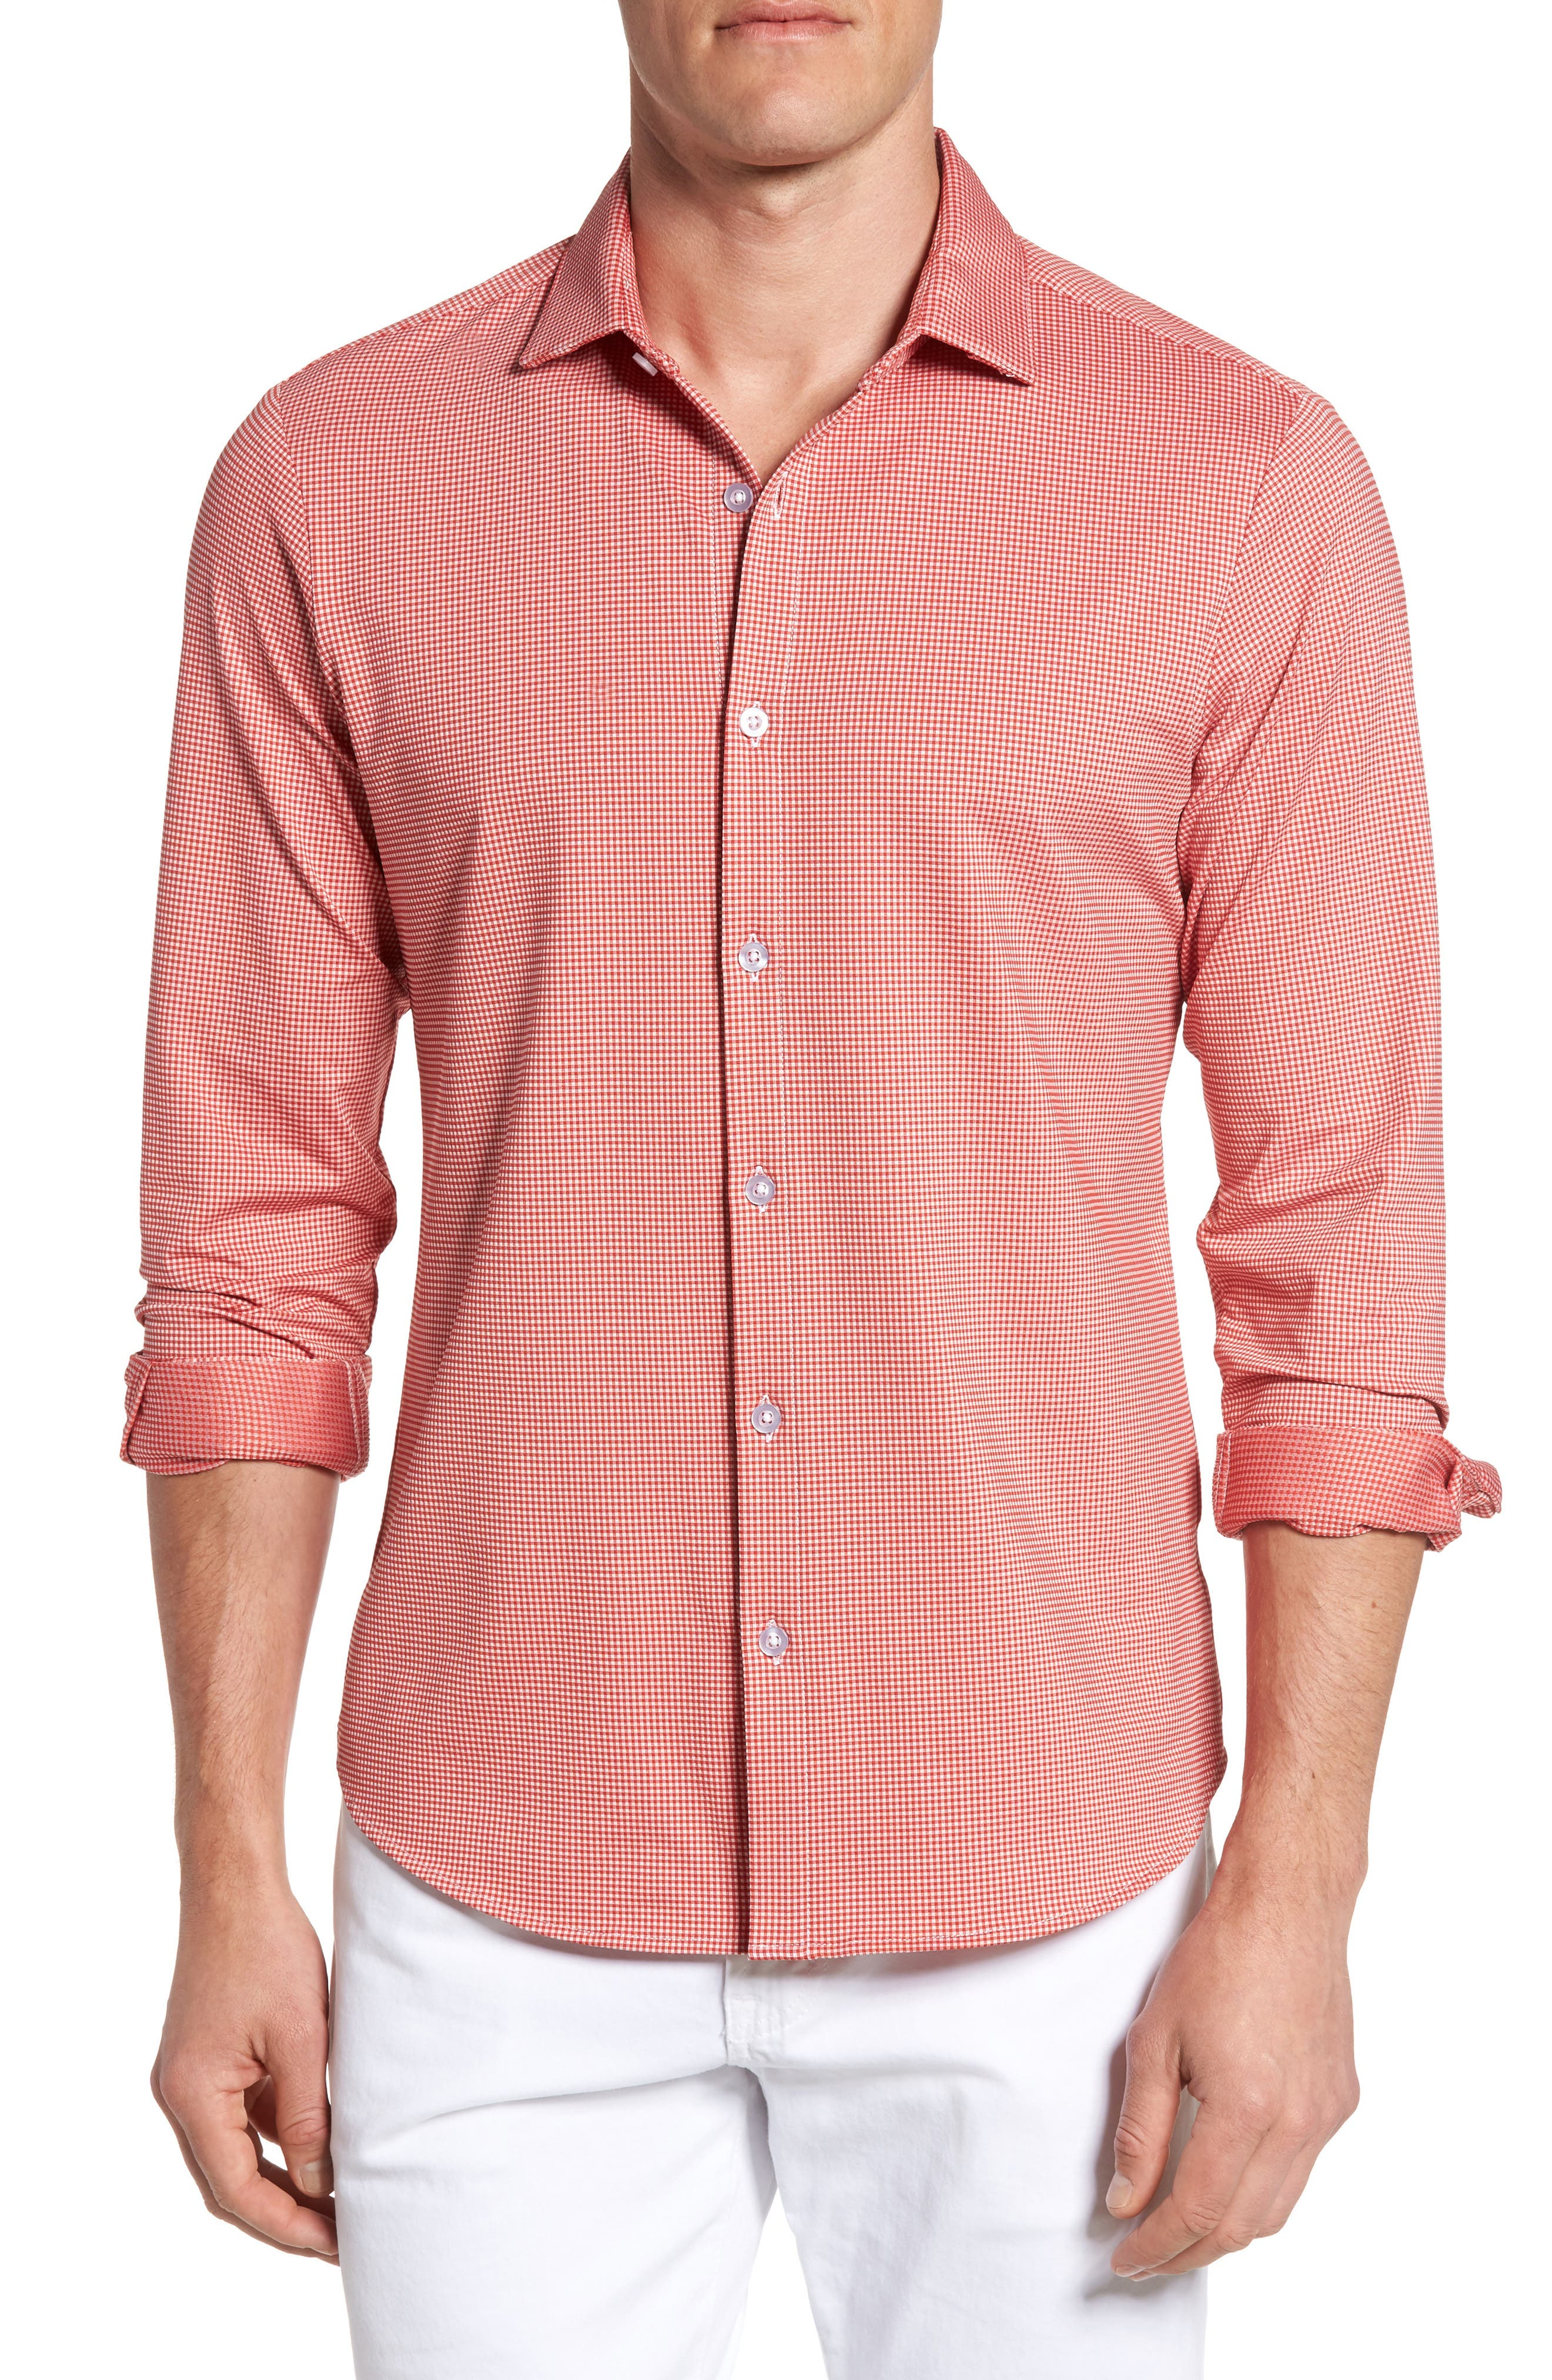 Hawthorne Gingham Sport Shirt,                             Main thumbnail 1, color,                             Red